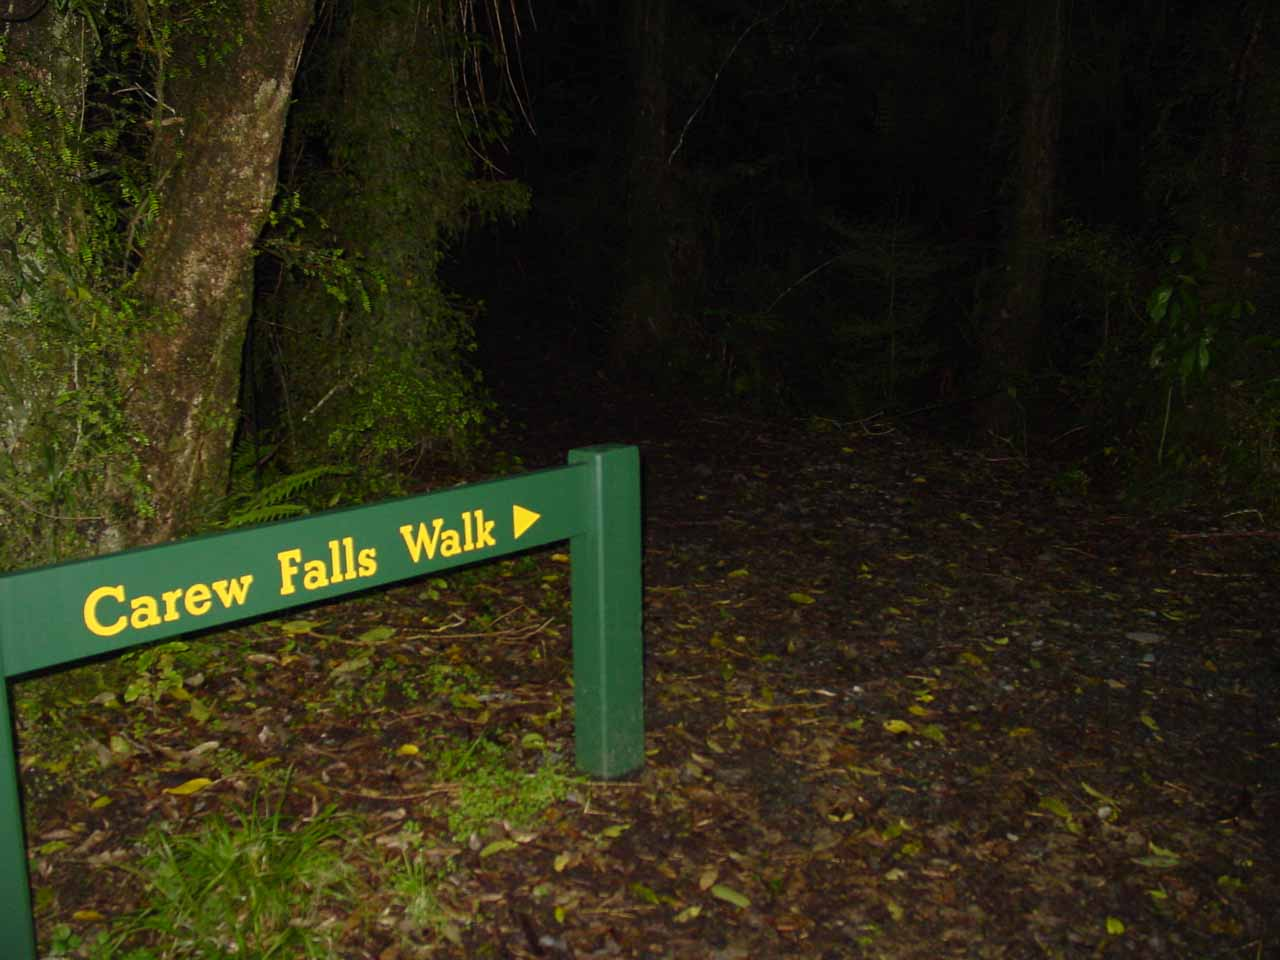 Signpost at the start of the Carew Falls Walk